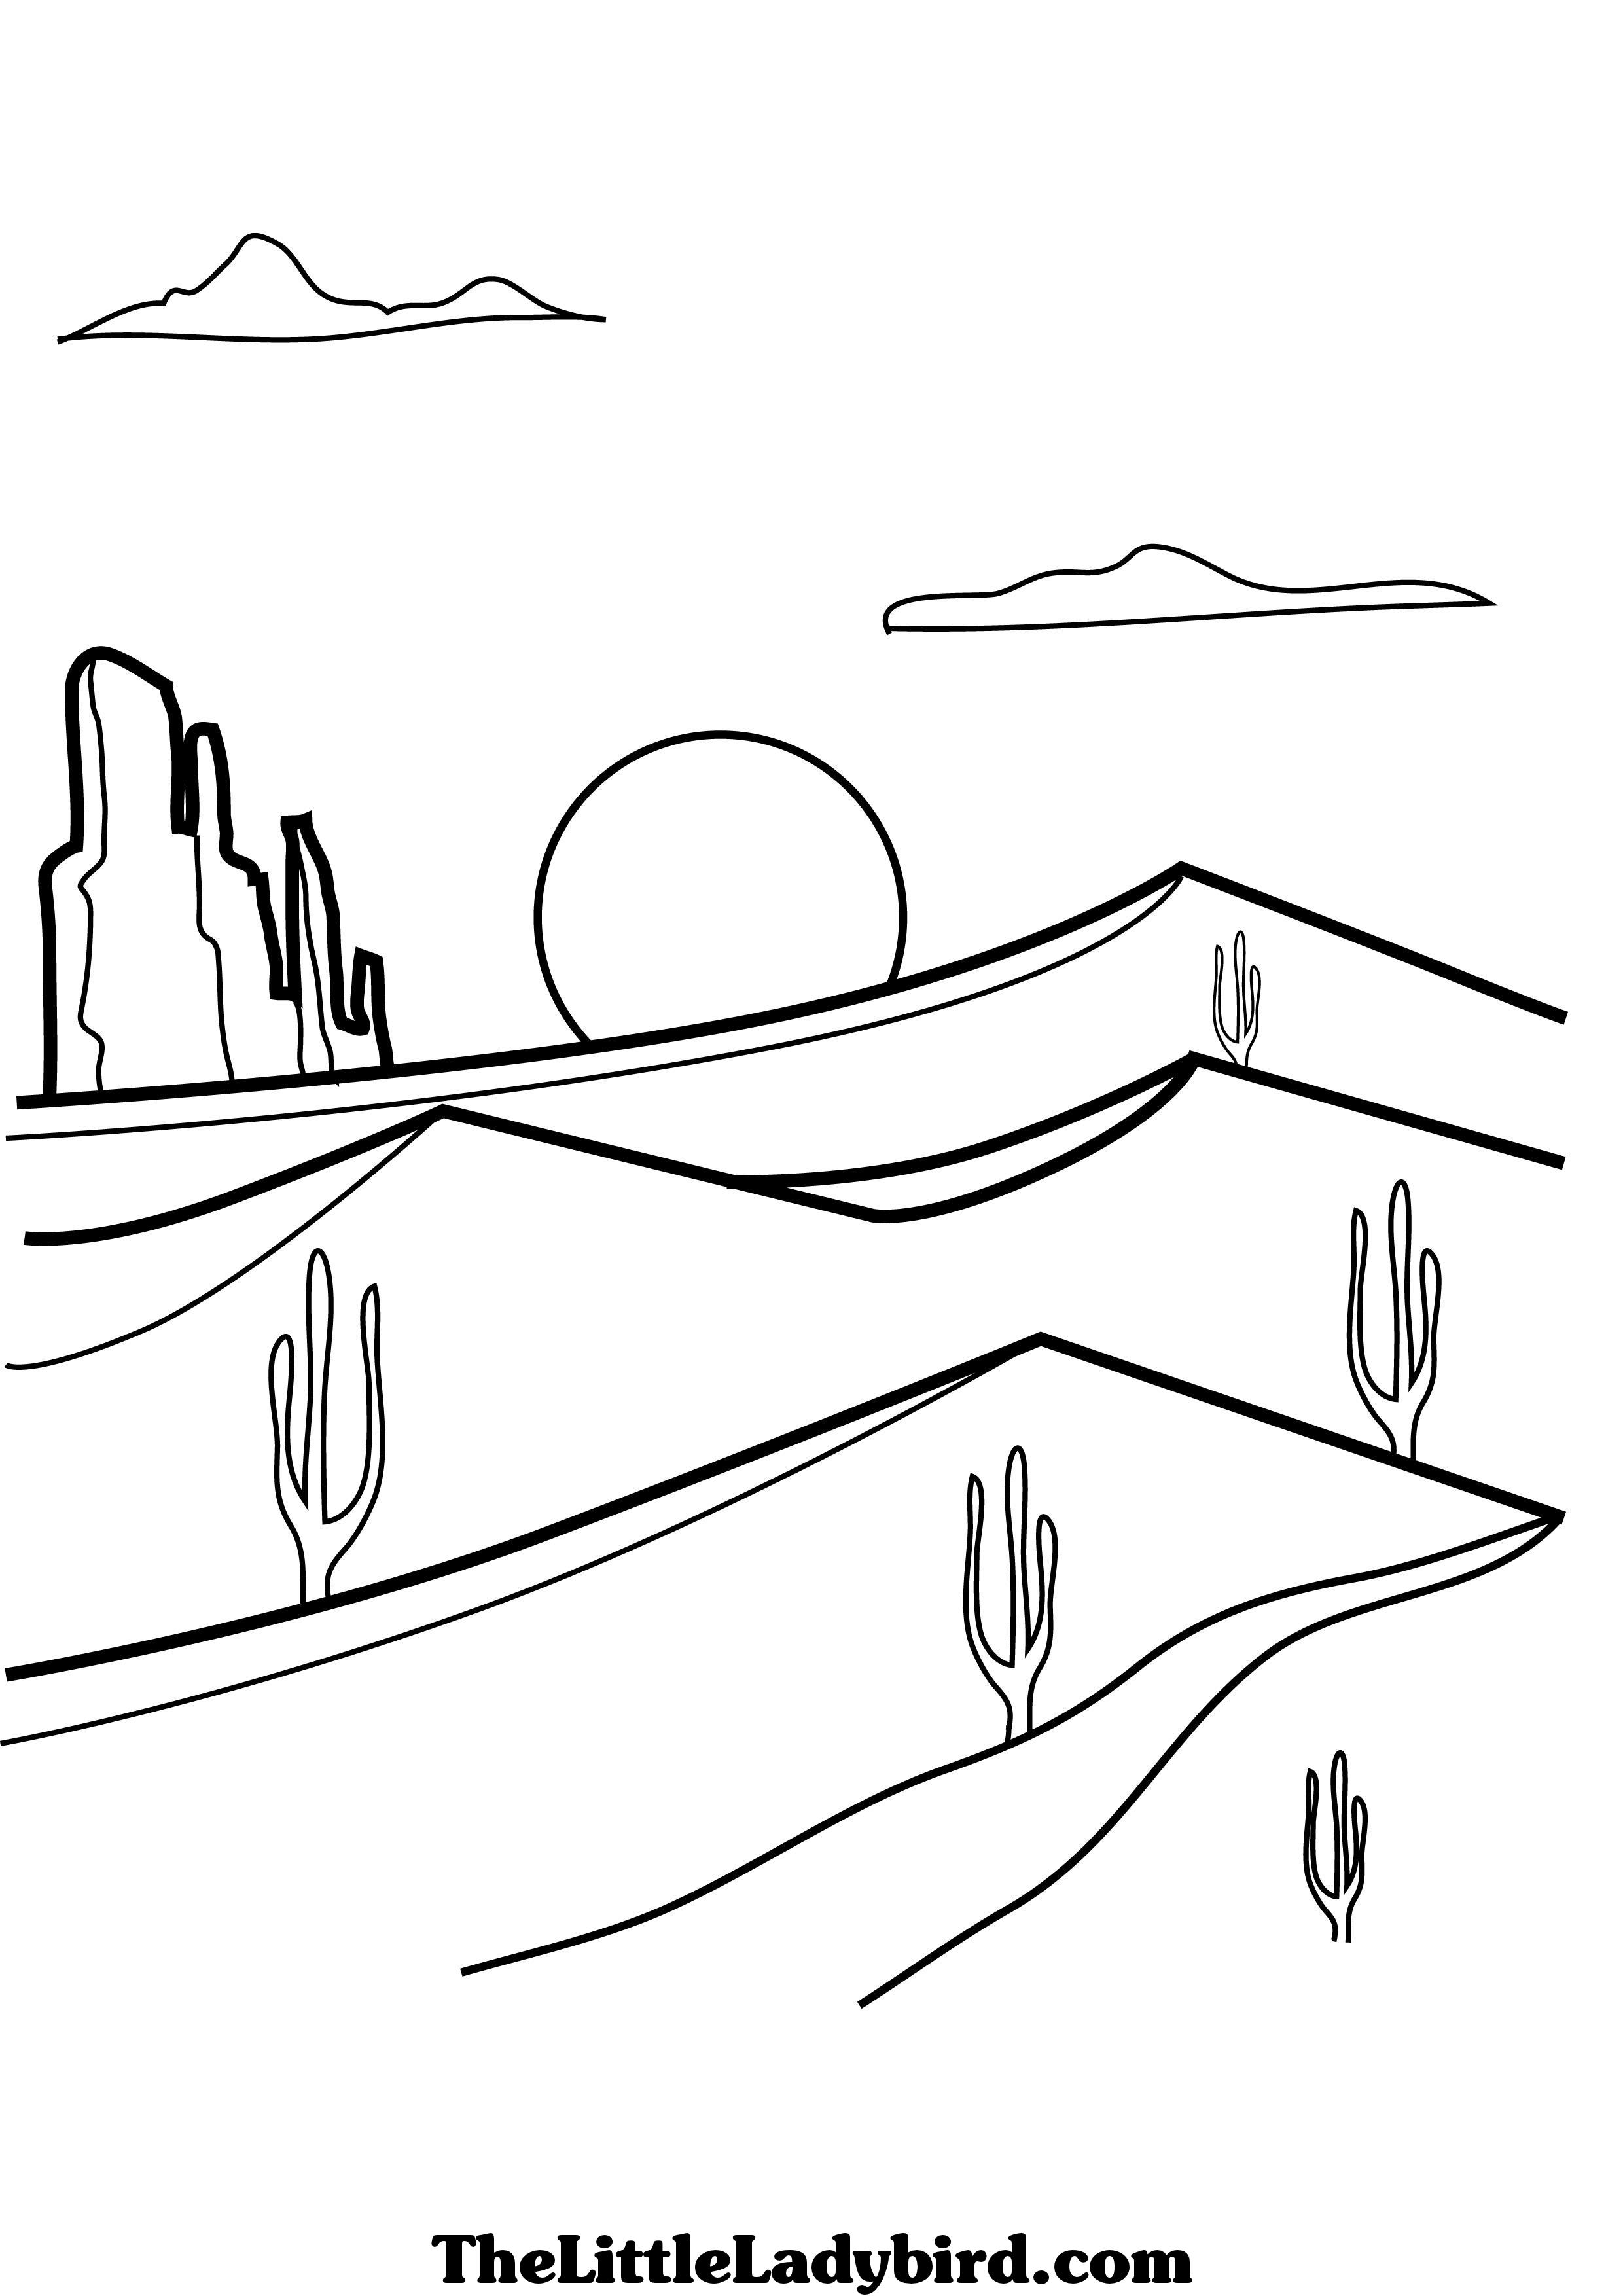 Desert Free Online Coloring – Color On Pages: Coloring Pages for Kids